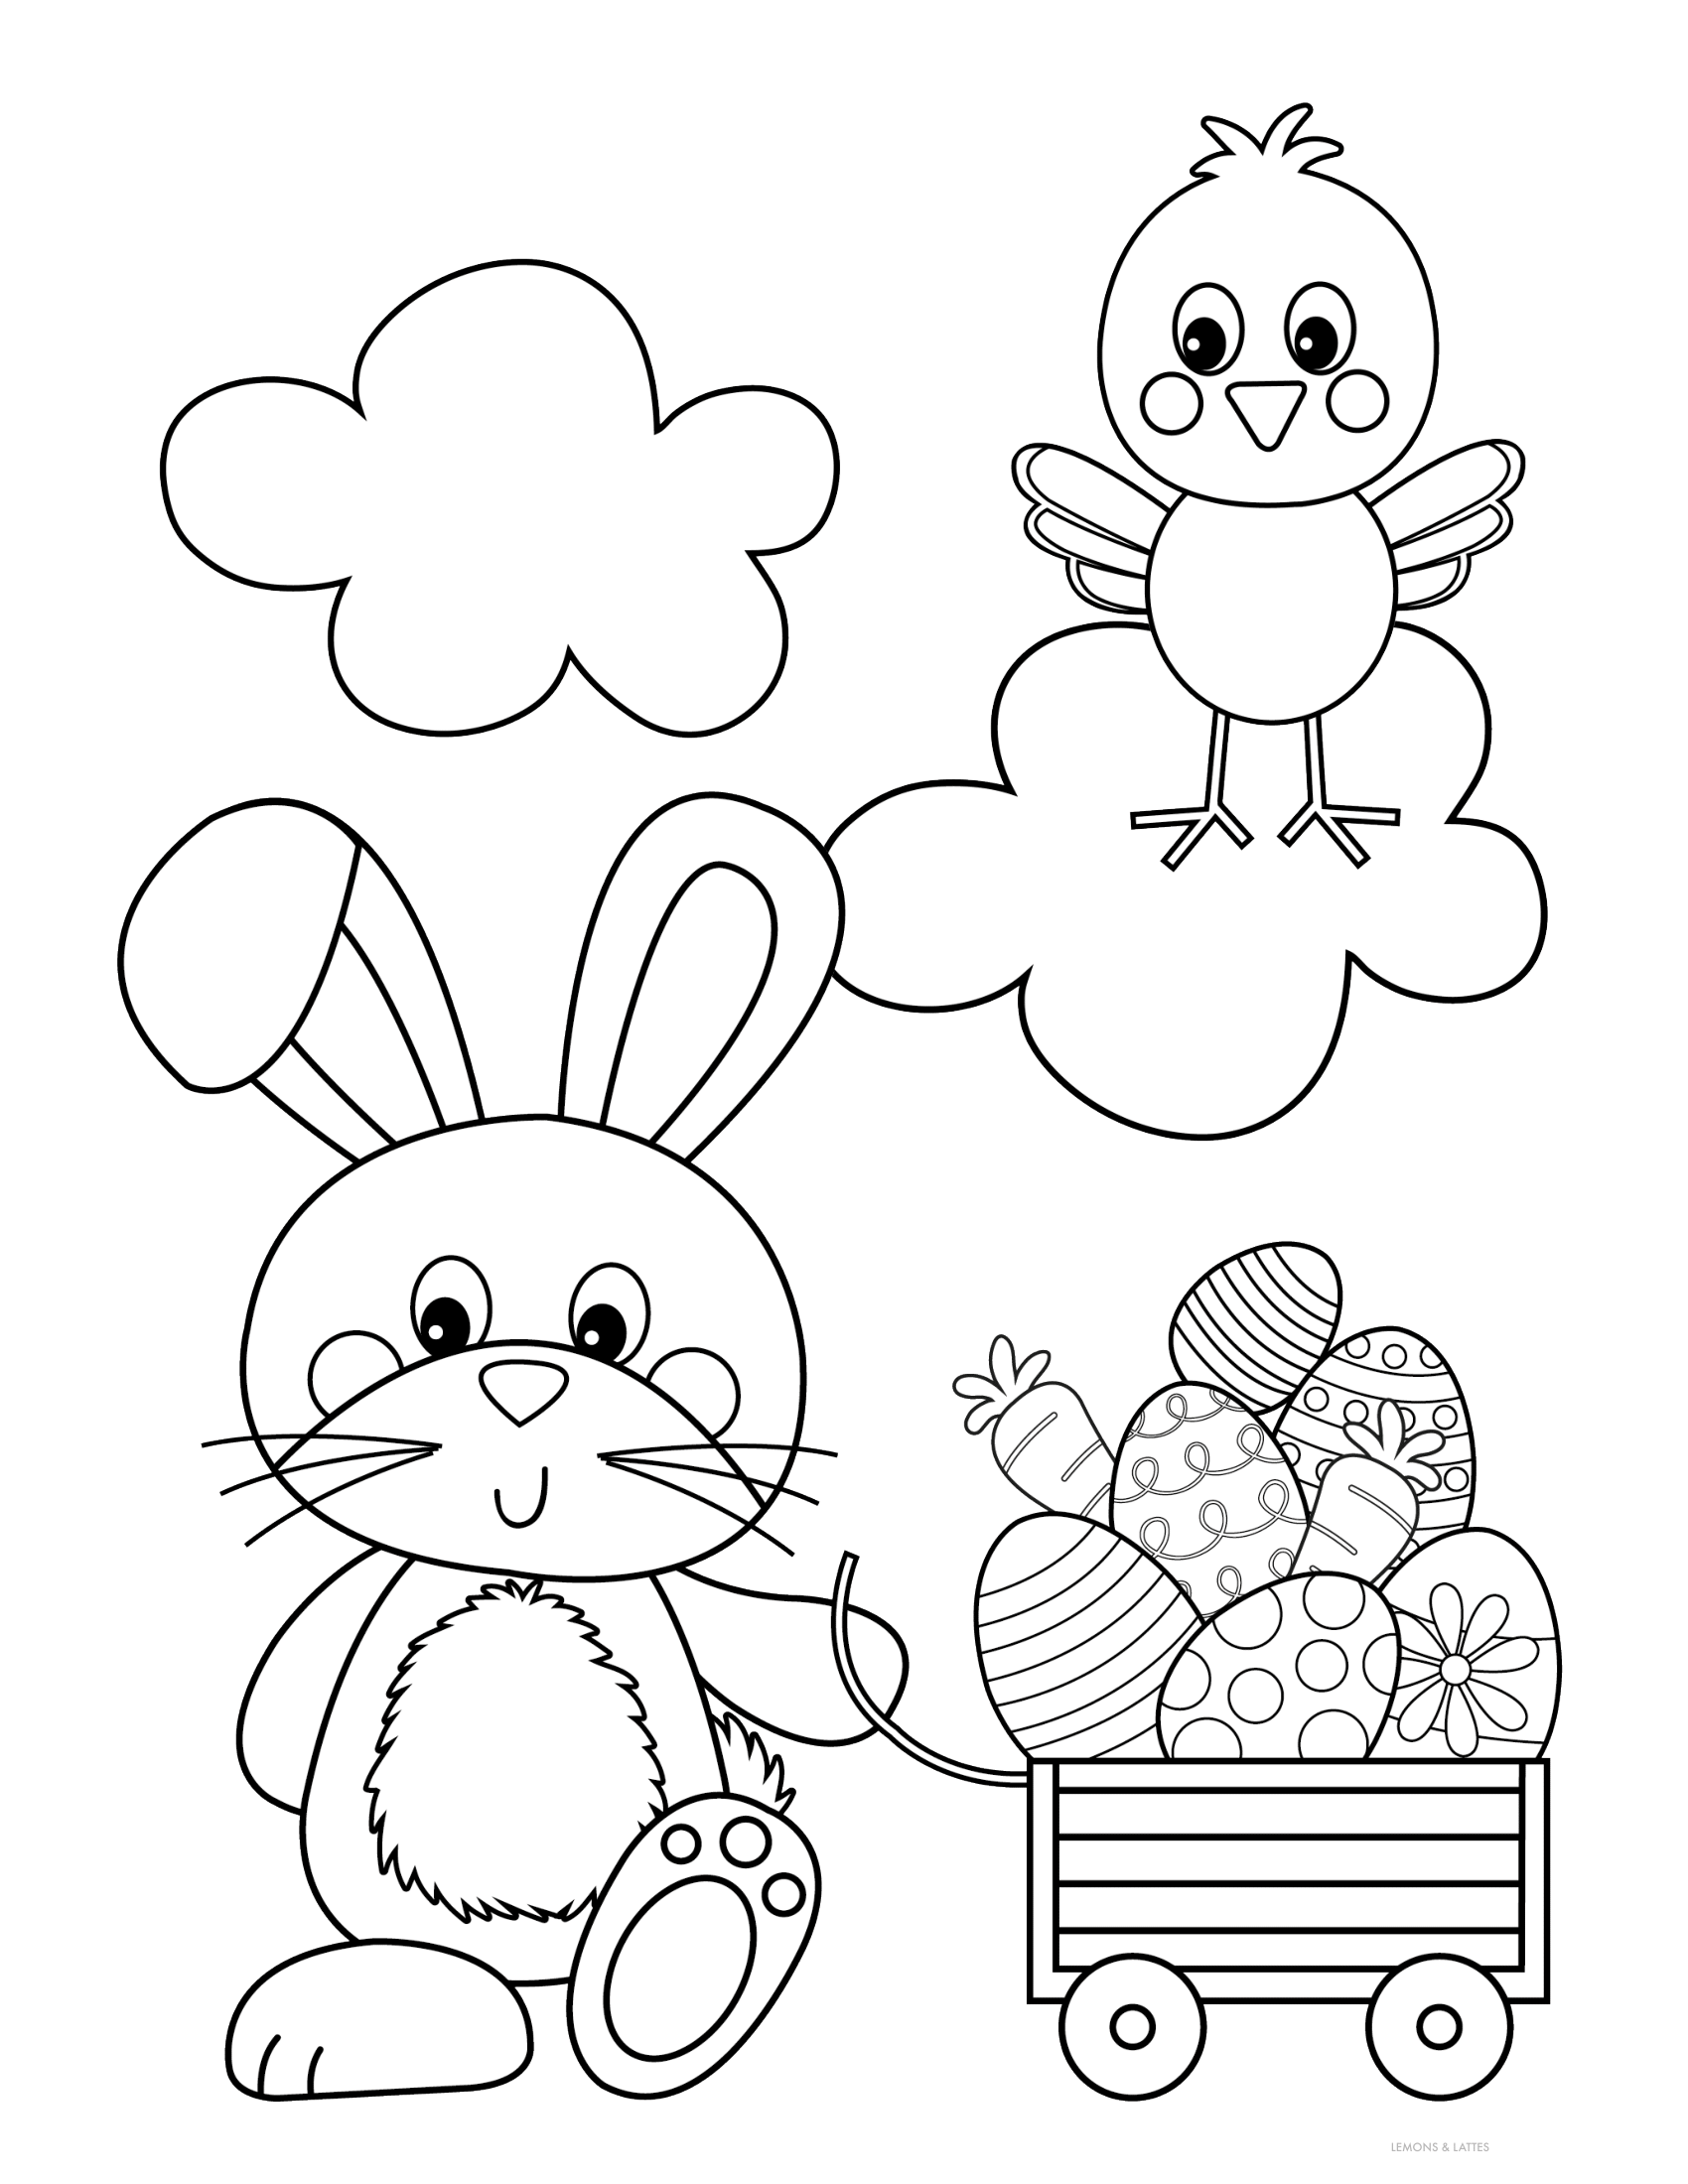 Free Printable Easter Coloring Pages Bunny Coloring Pages Easter Coloring Book Easter Prints